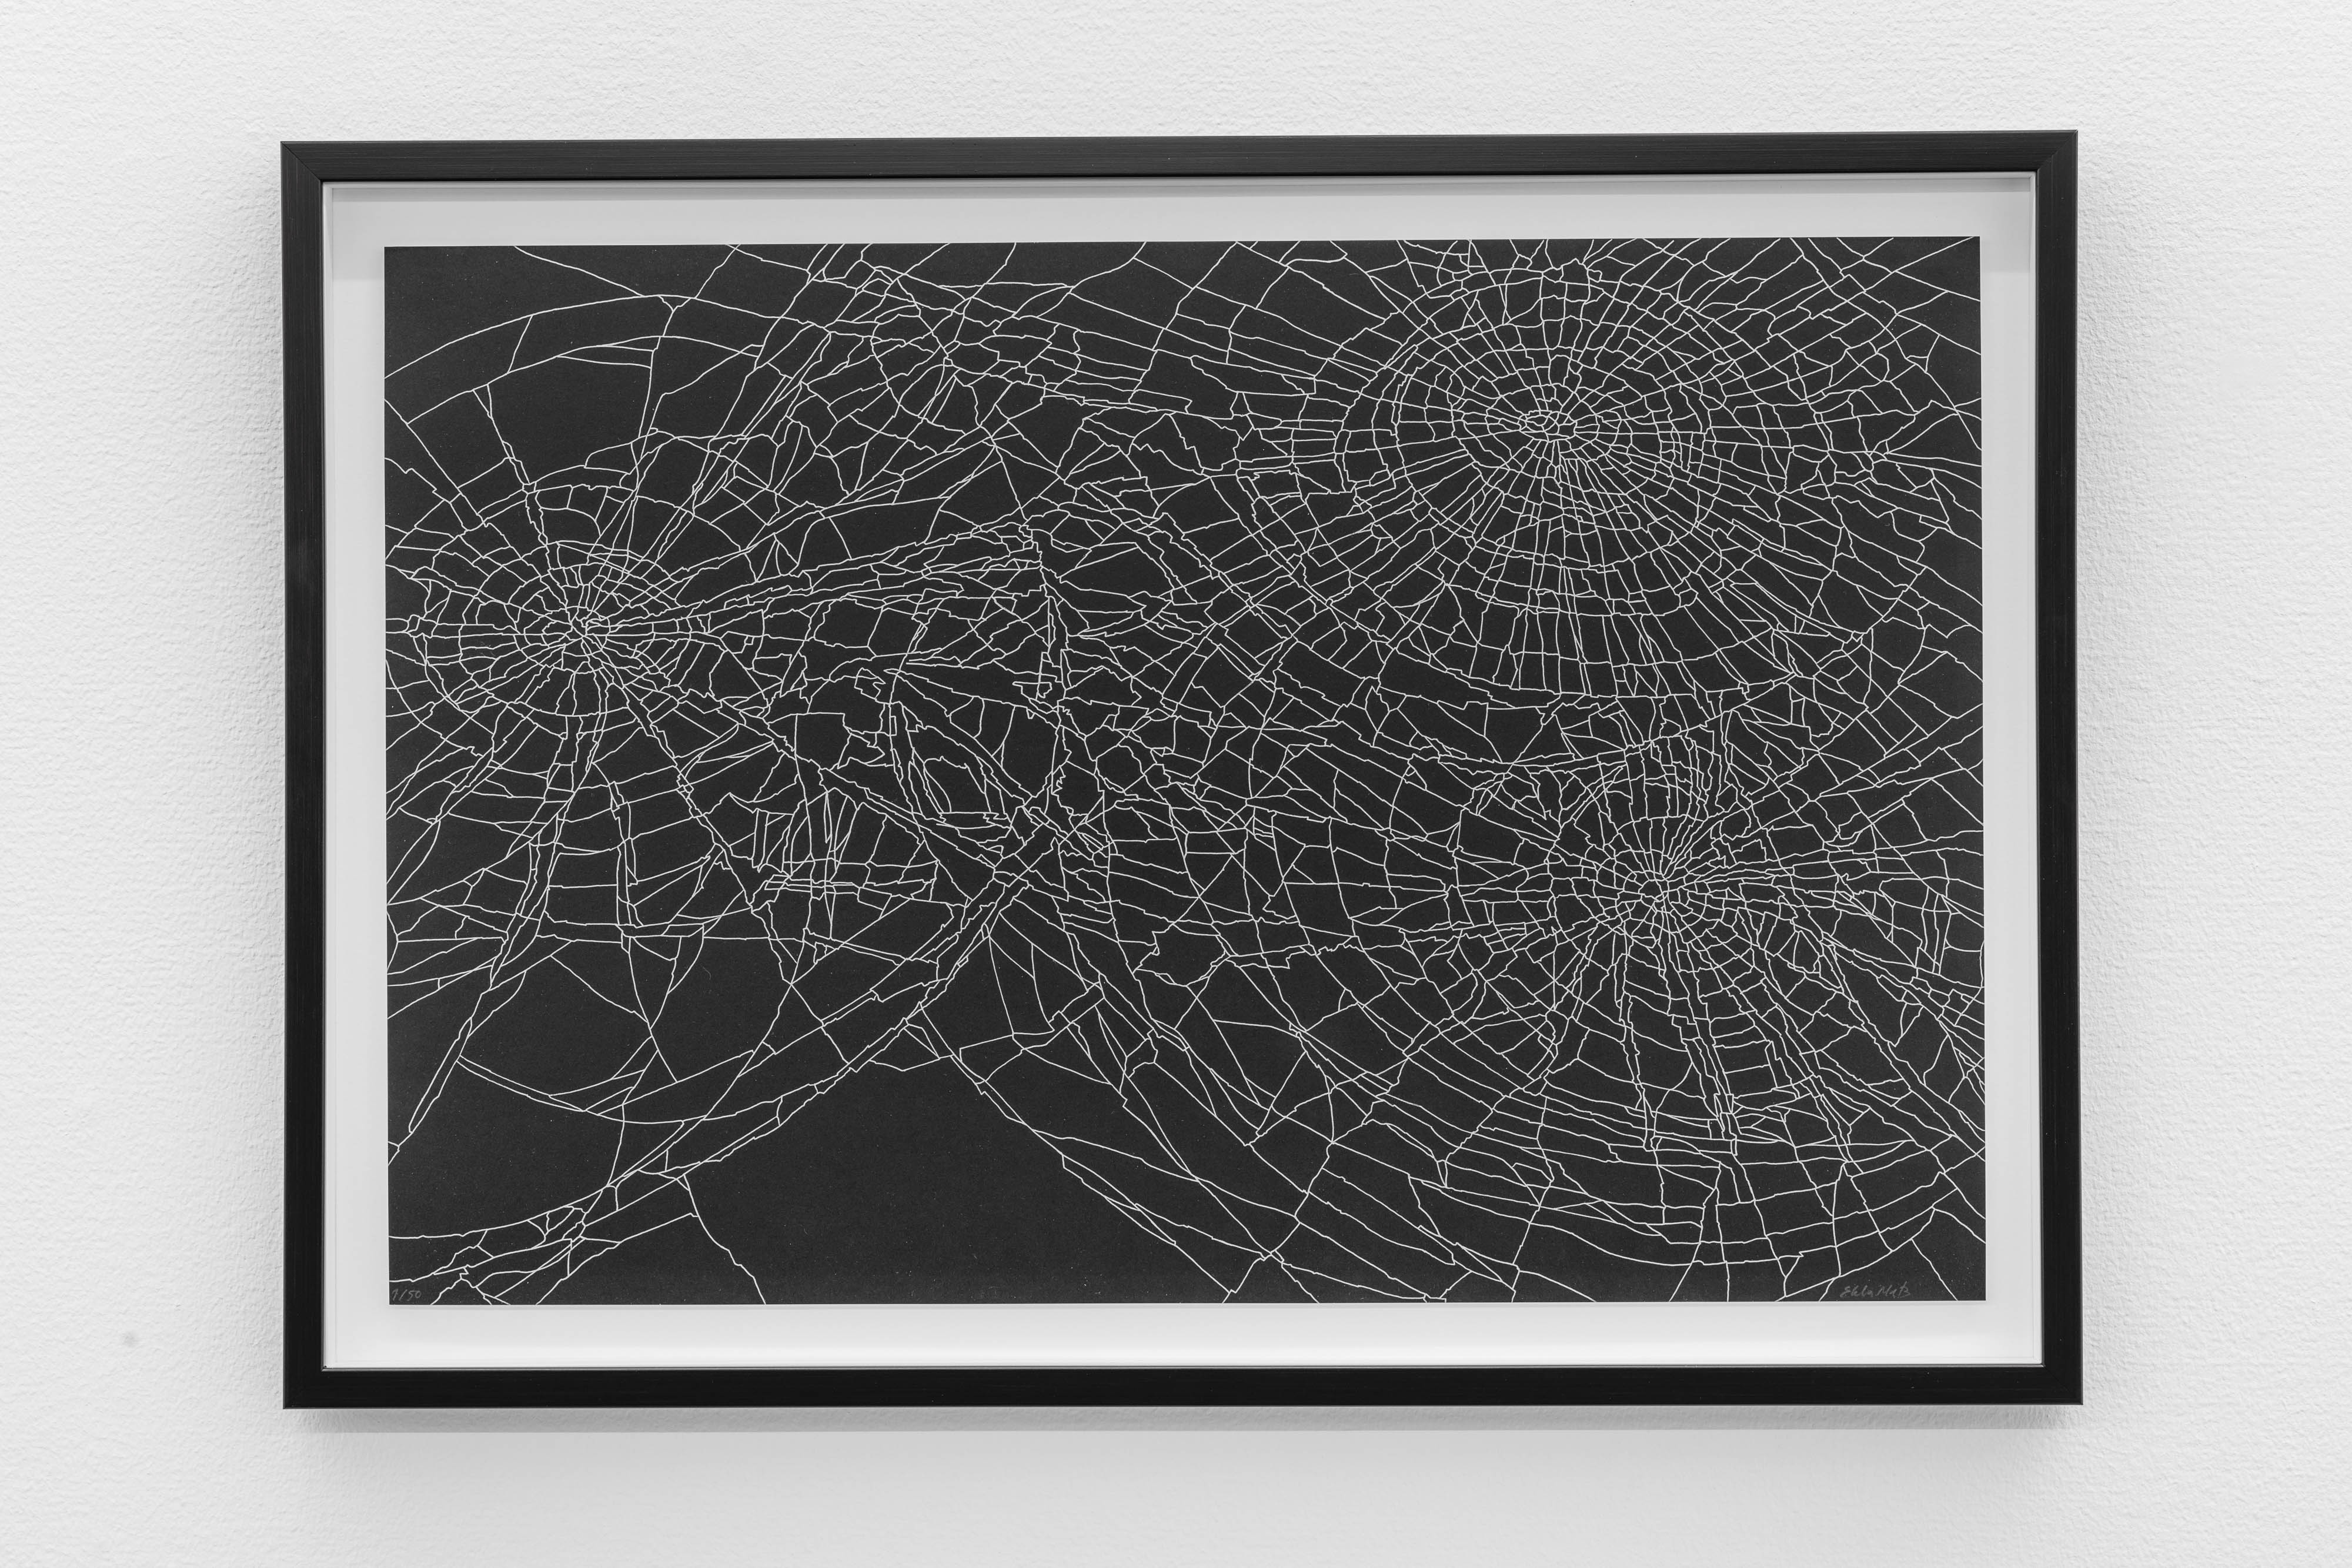 Ebba Matz, Möte, 2017, lithography, sheet size 60 x 39,5 cm, (67,5 x 47,5 cm with frame), edition 50